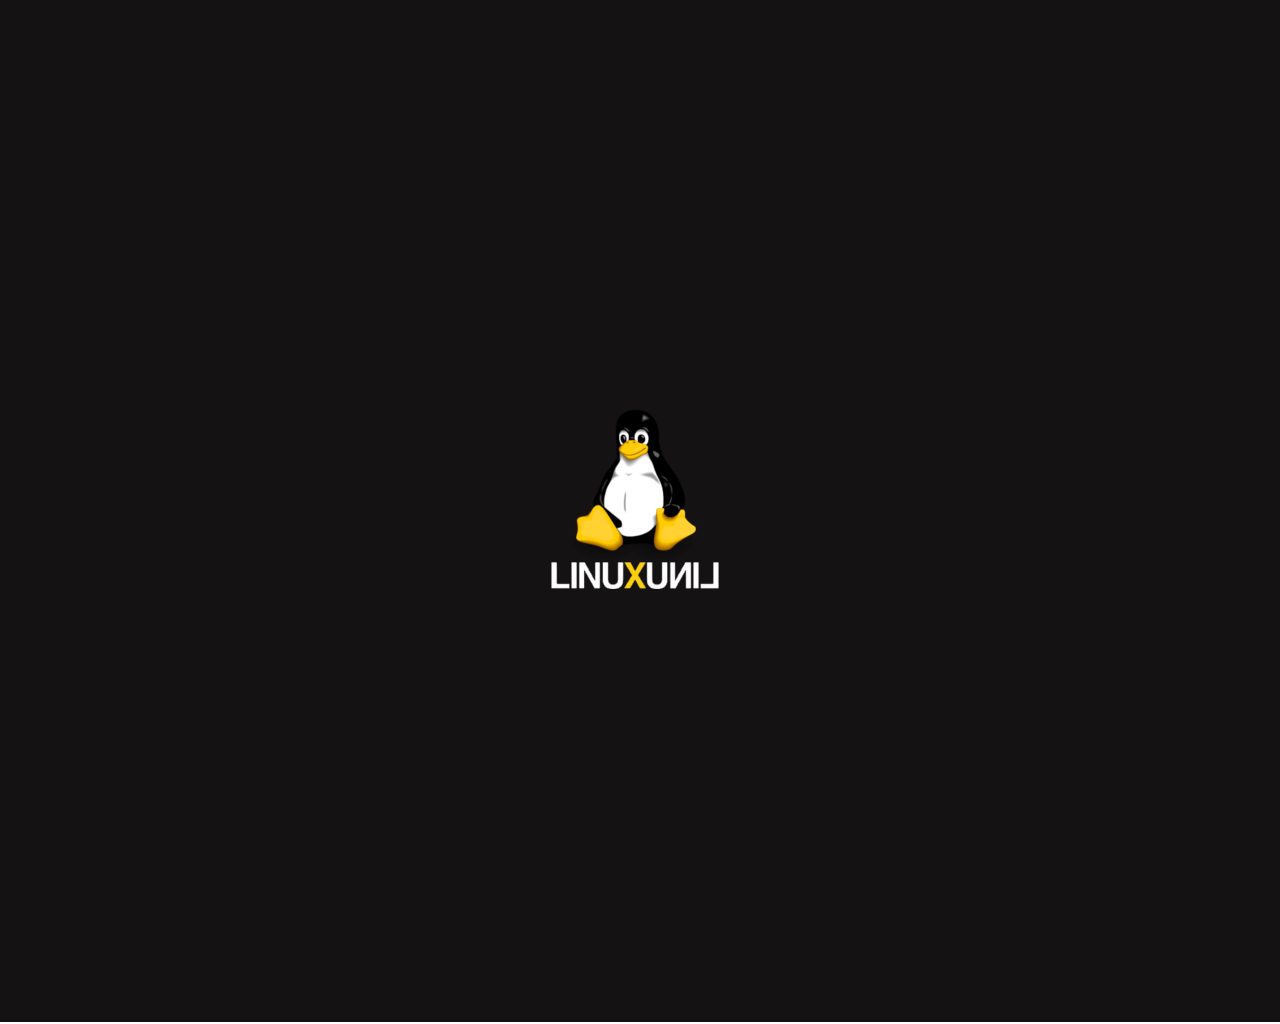 Tux Linux Wallpapers - Wallpaper Cave